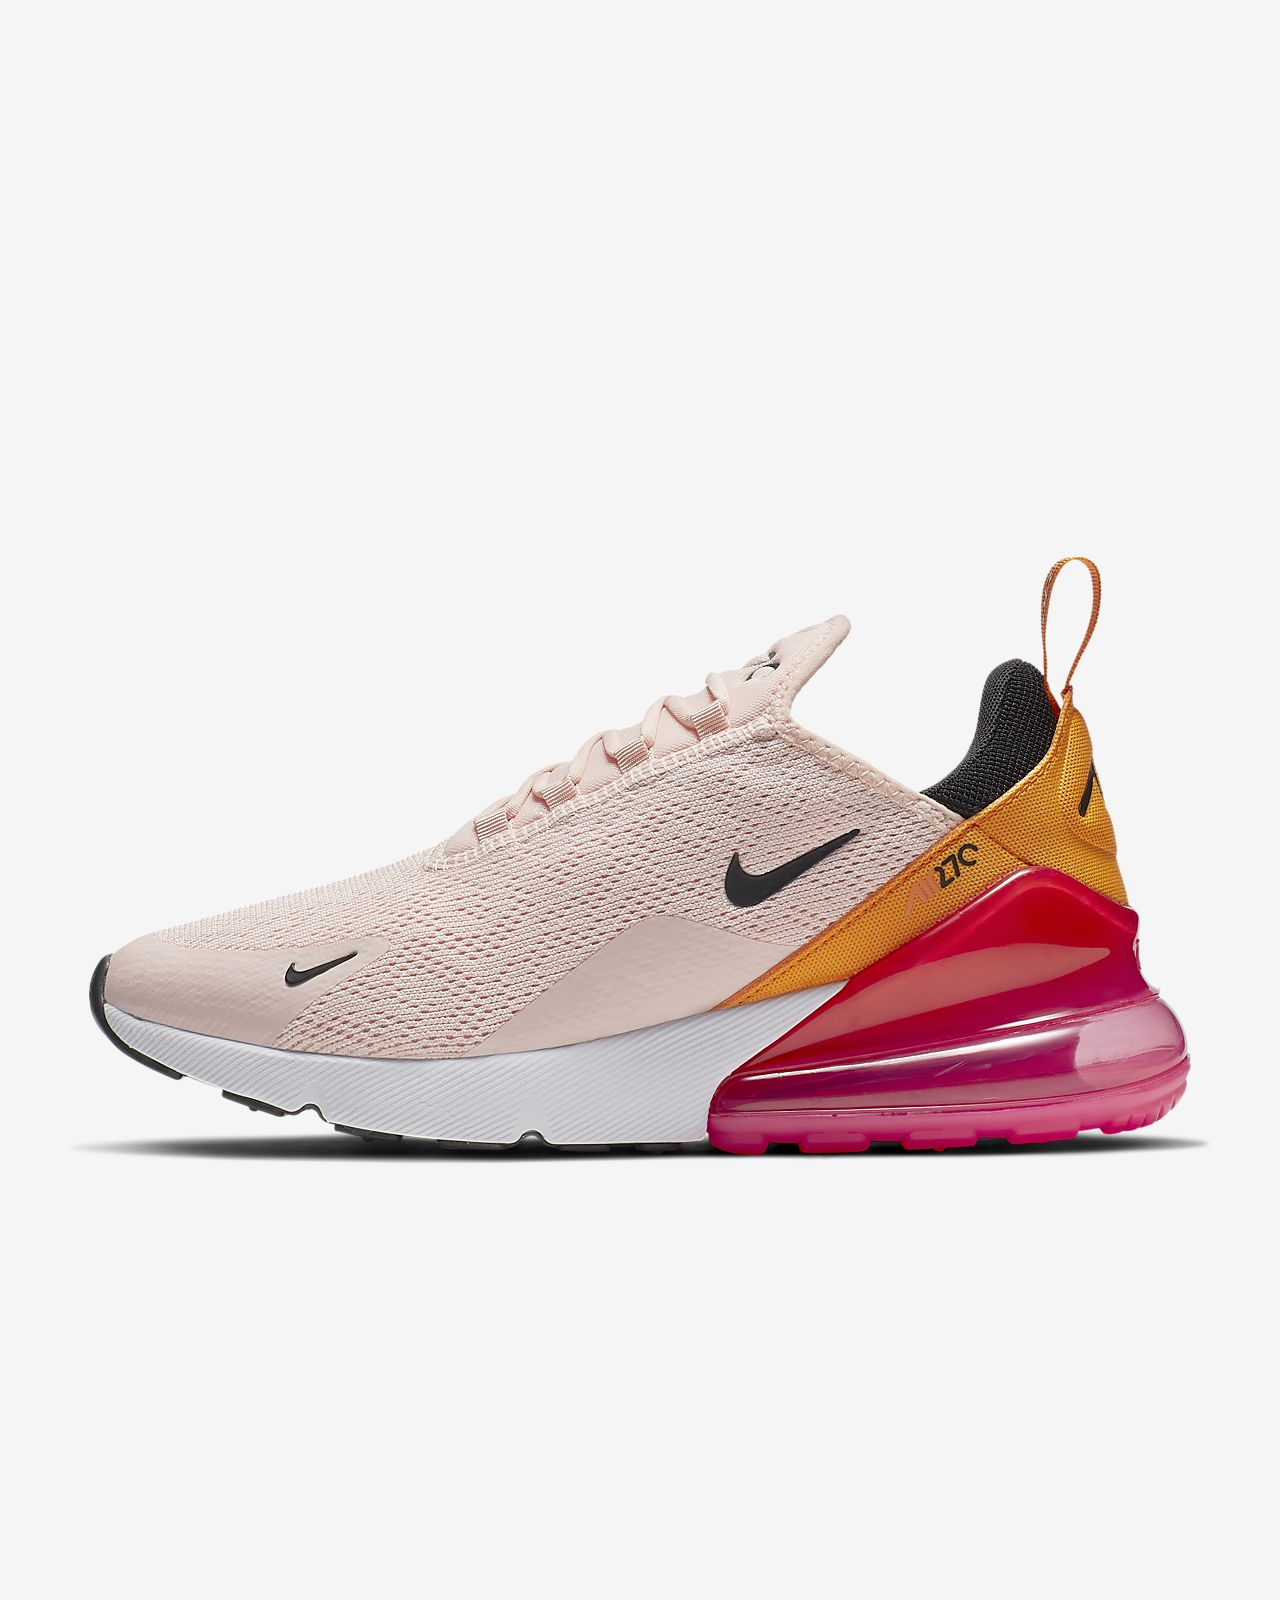 separation shoes 0ba13 87c96 ... Nike Air Max 270 Women s Shoe